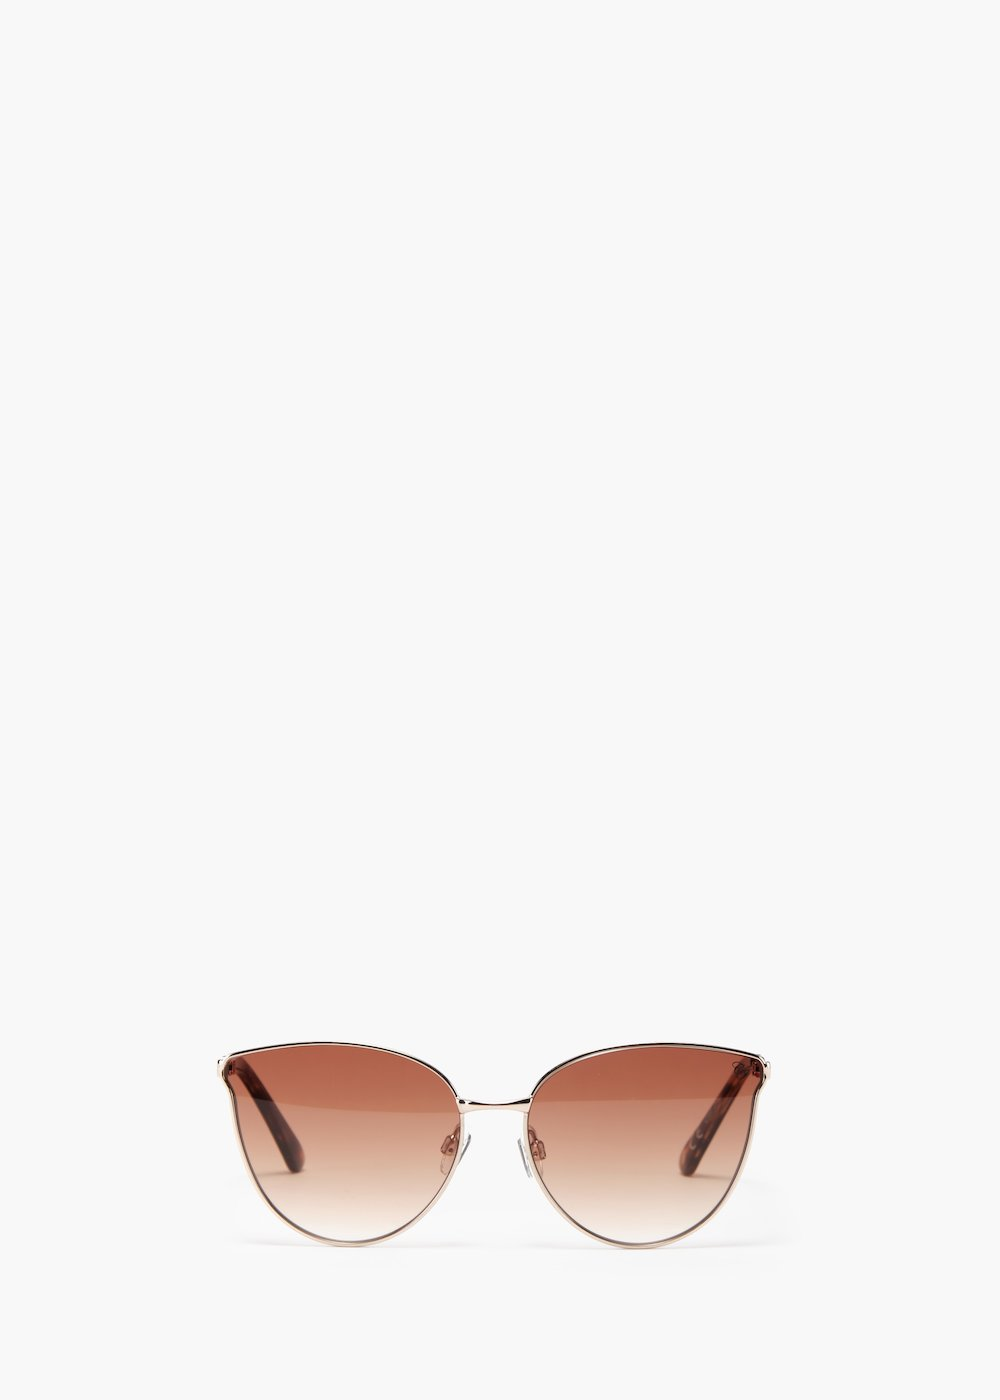 Sunglasses with gun metal frame - Brown - Woman